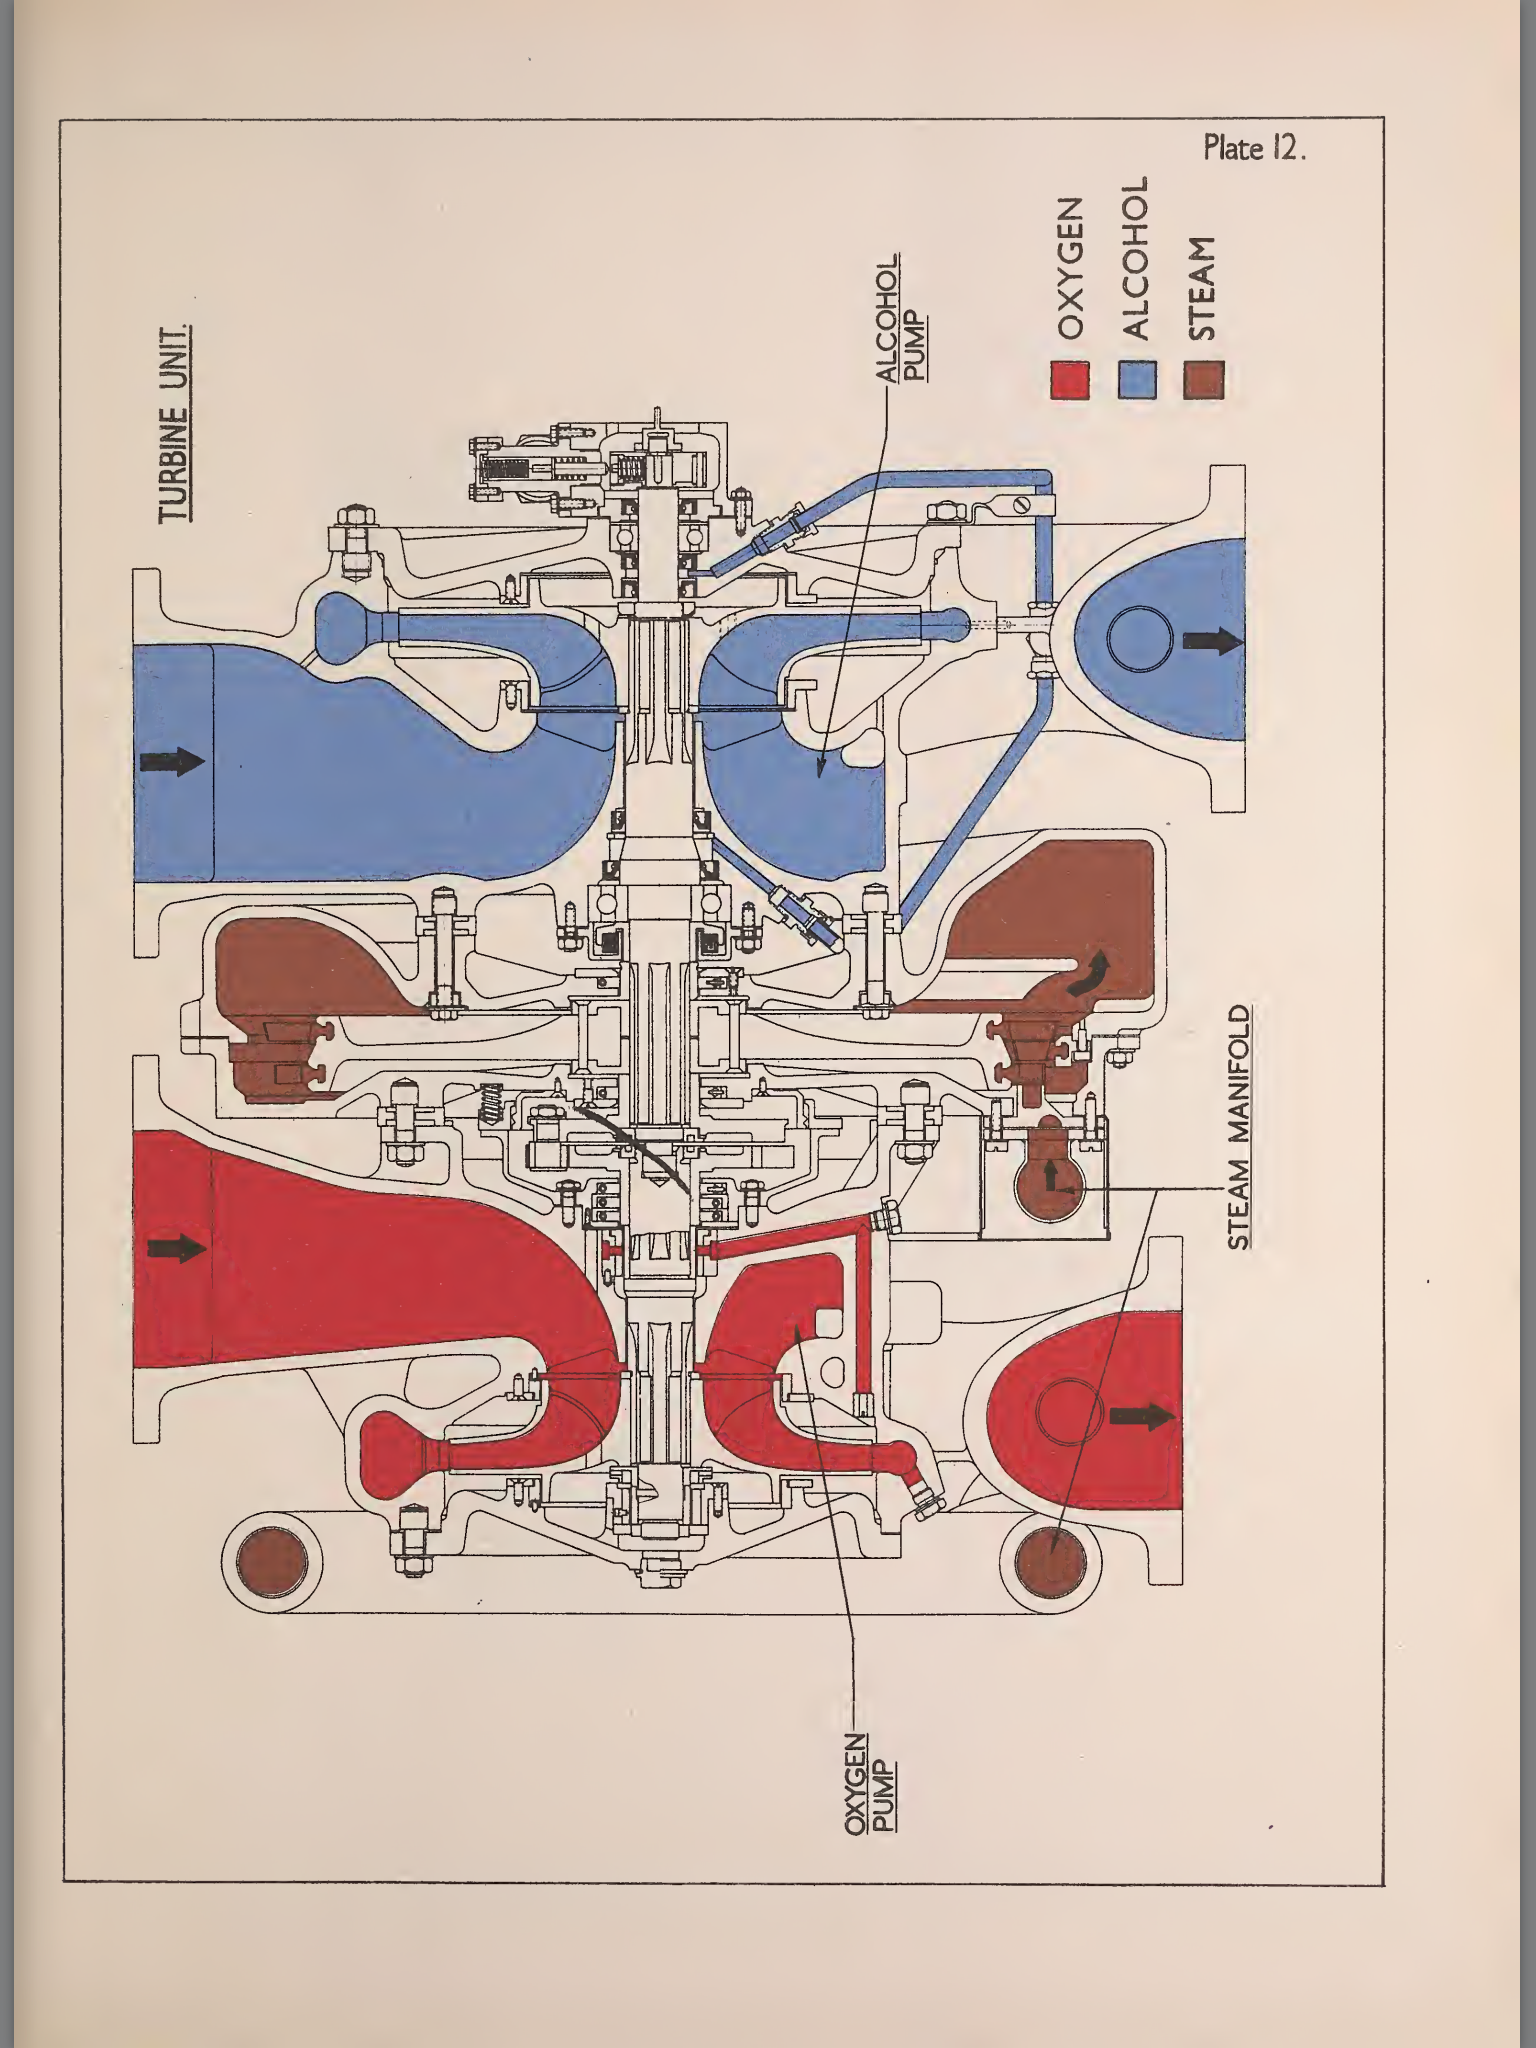 hight resolution of v 2 rocket turbopump diagram rocket engine jet engine gas turbine aerospace